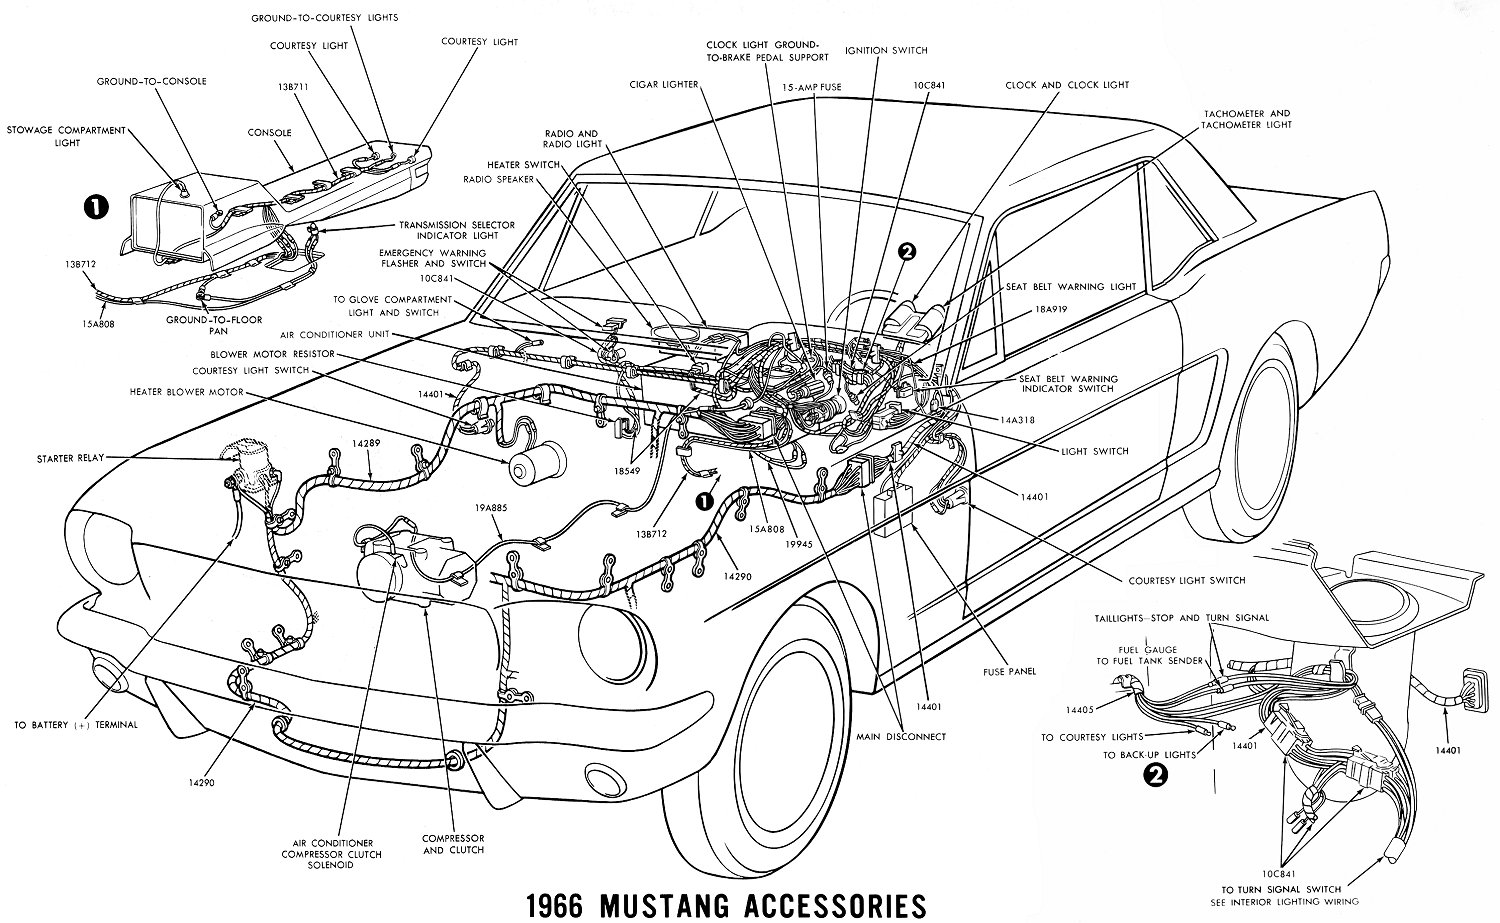 66acces 1966 mustang wiring diagrams average joe restoration Equus Fuel Gauge Wiring Diagram at bakdesigns.co